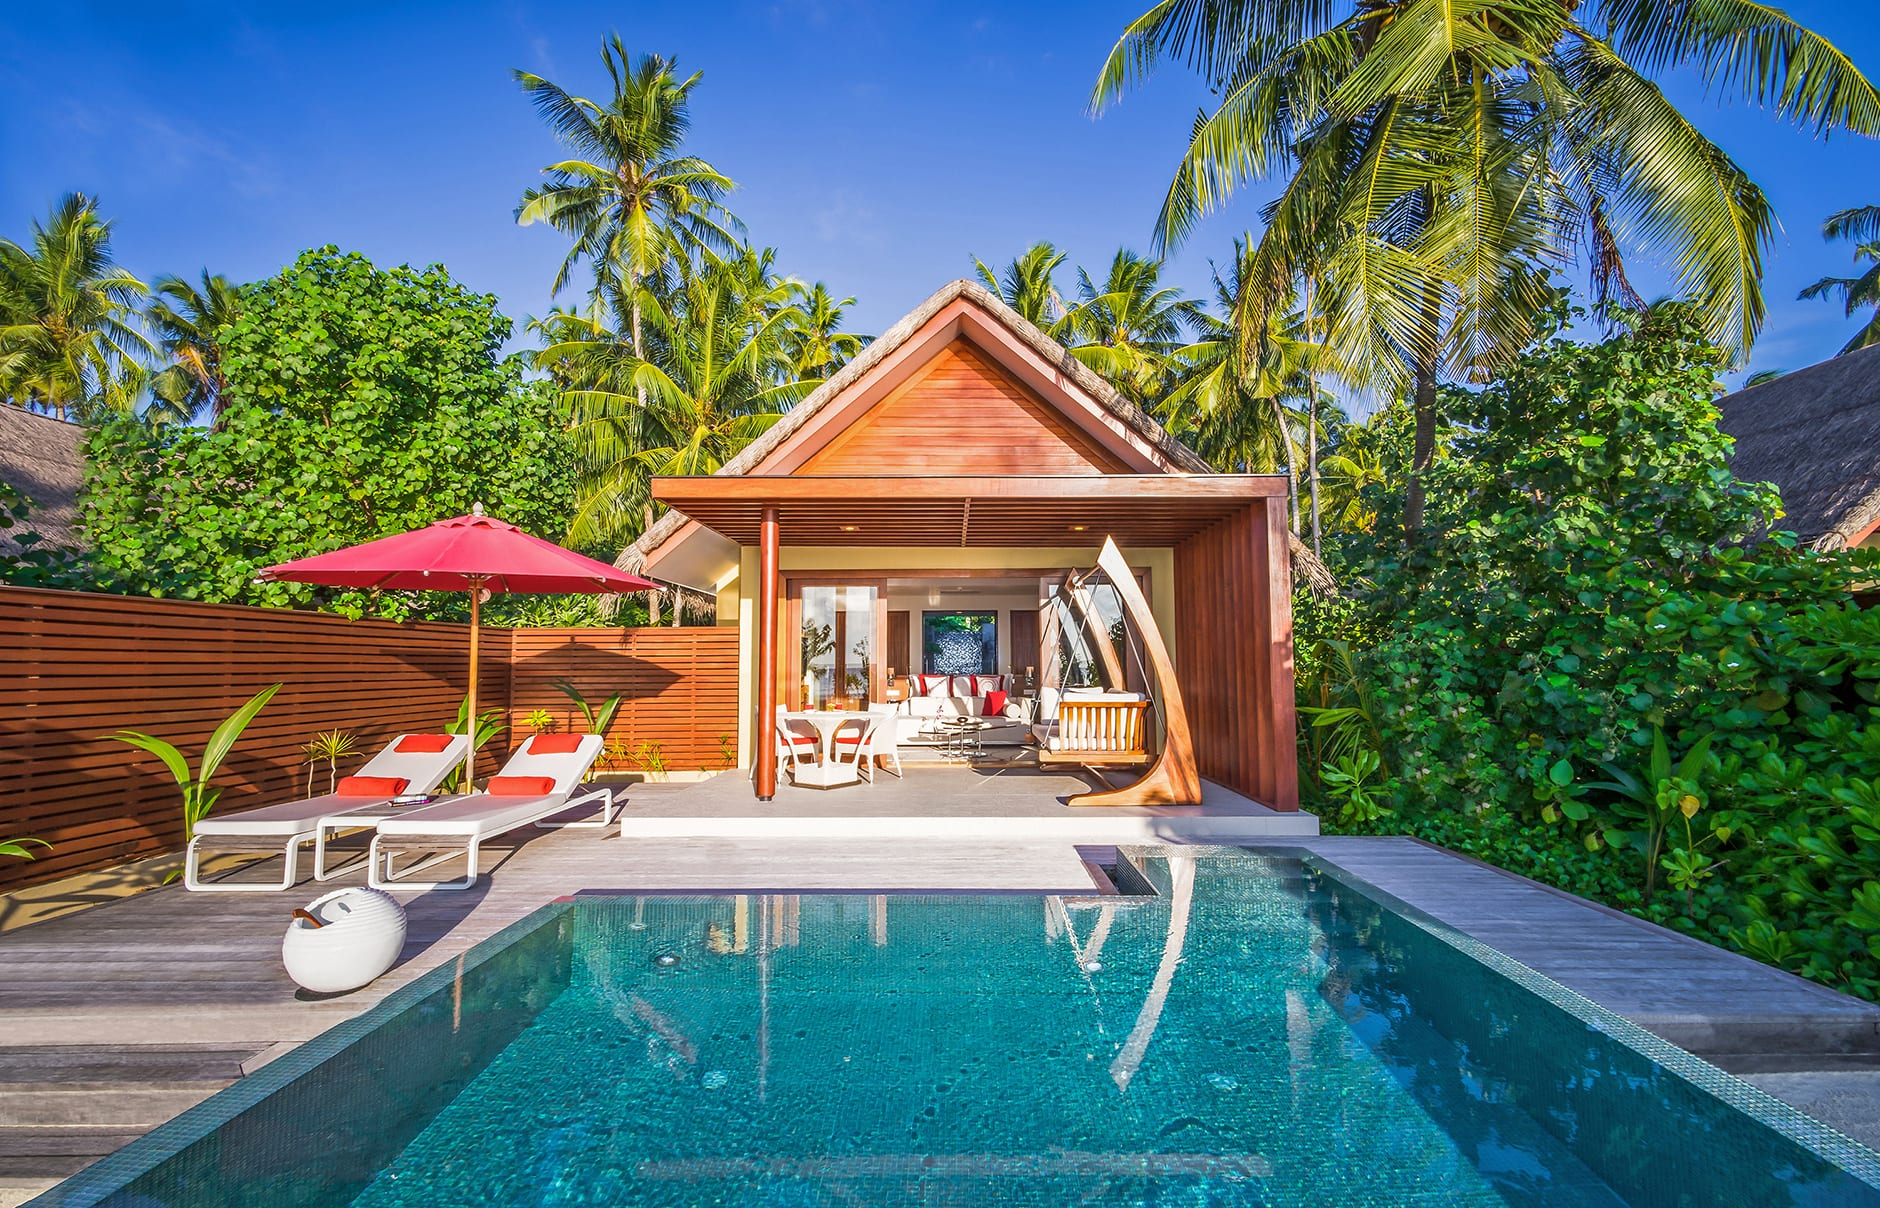 Niyama Private Islands Maldives. Hotel Review by TravelPlusStyle. Photo © NIYAMA